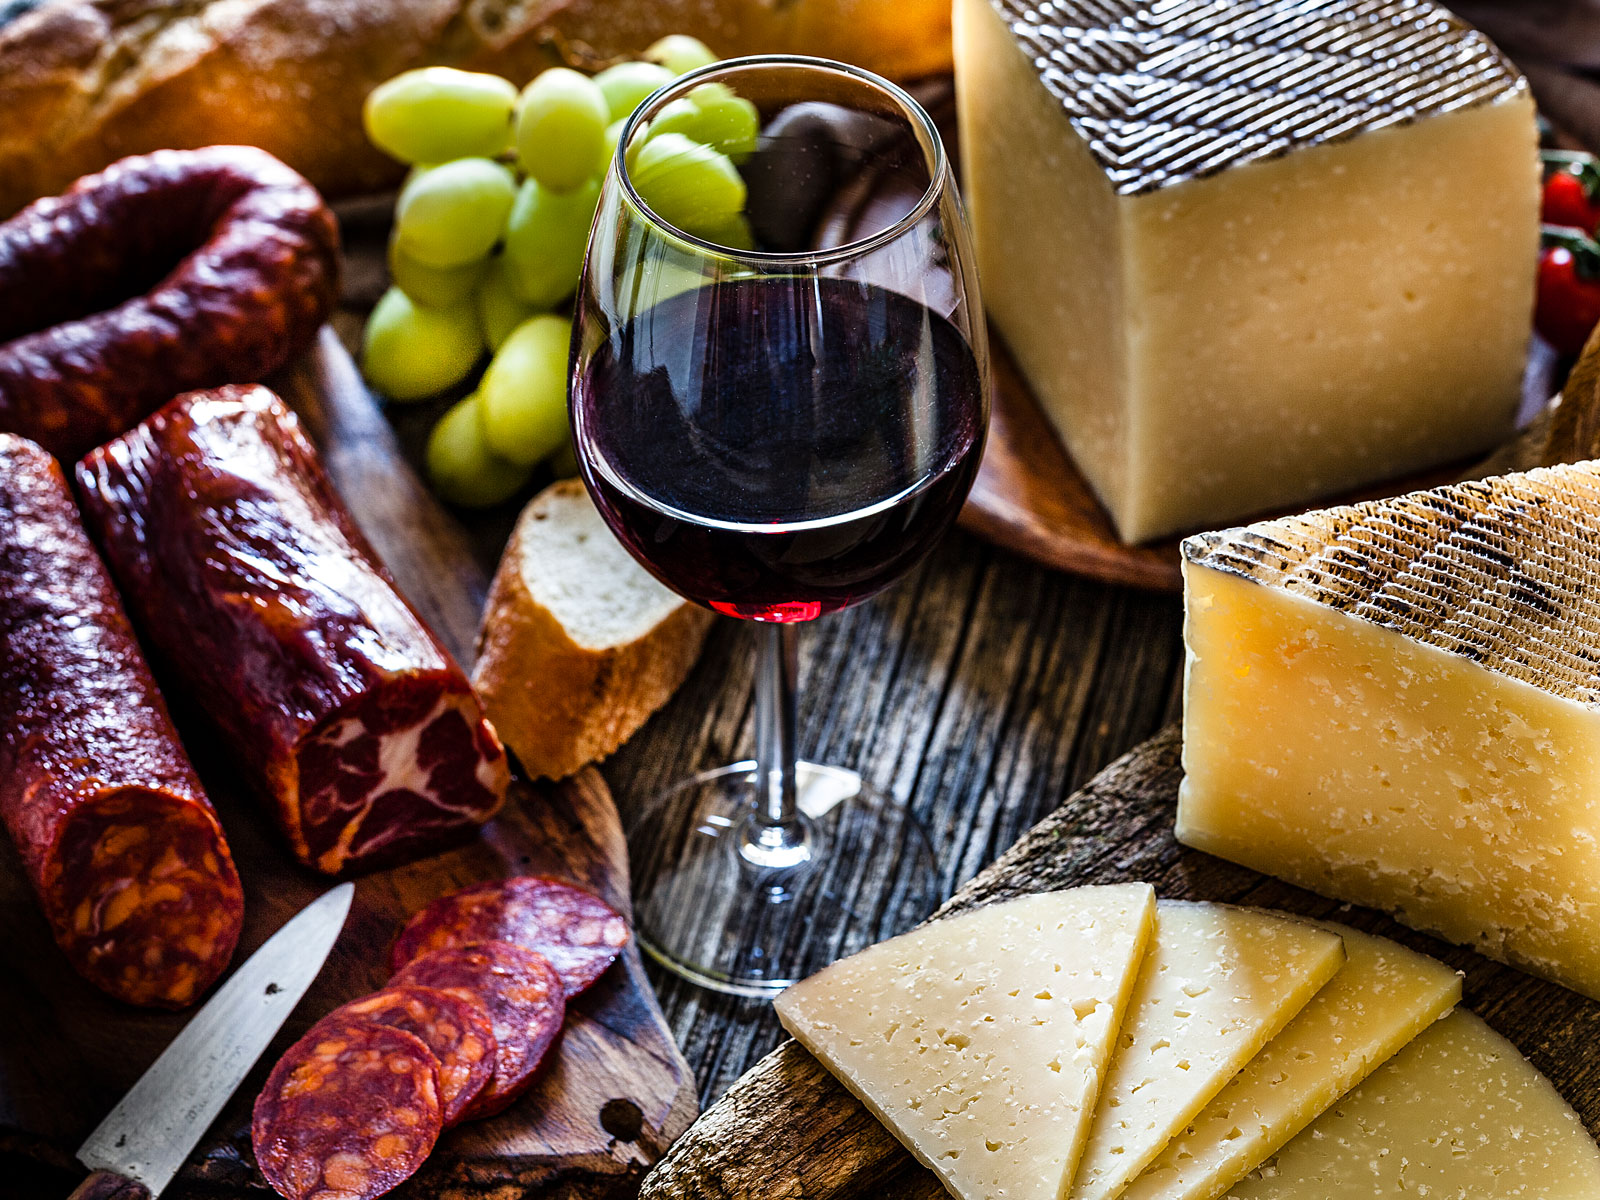 wine-cheese-tariffs-FT-BLOG0919.jpg